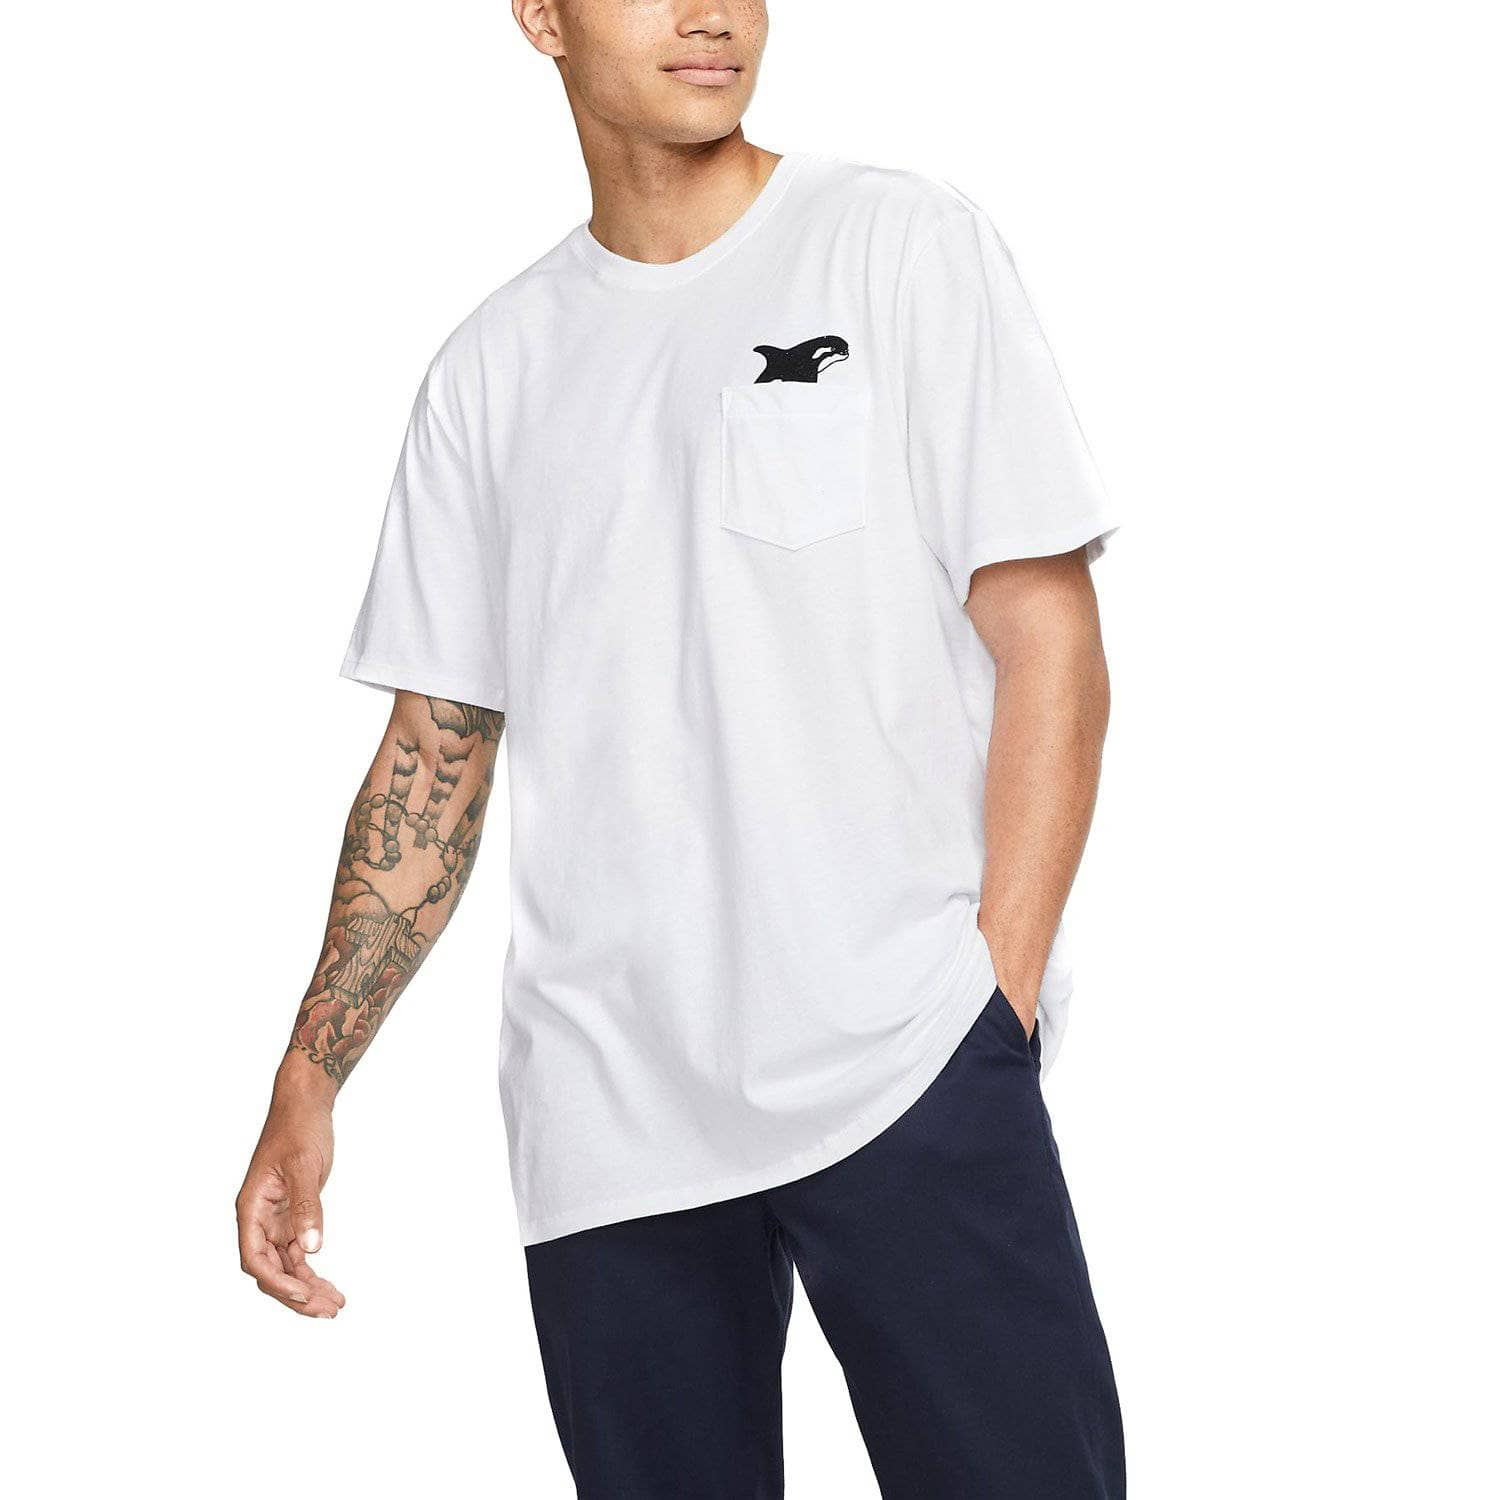 Hurley Killer Bro Pocket T-Shirt - White